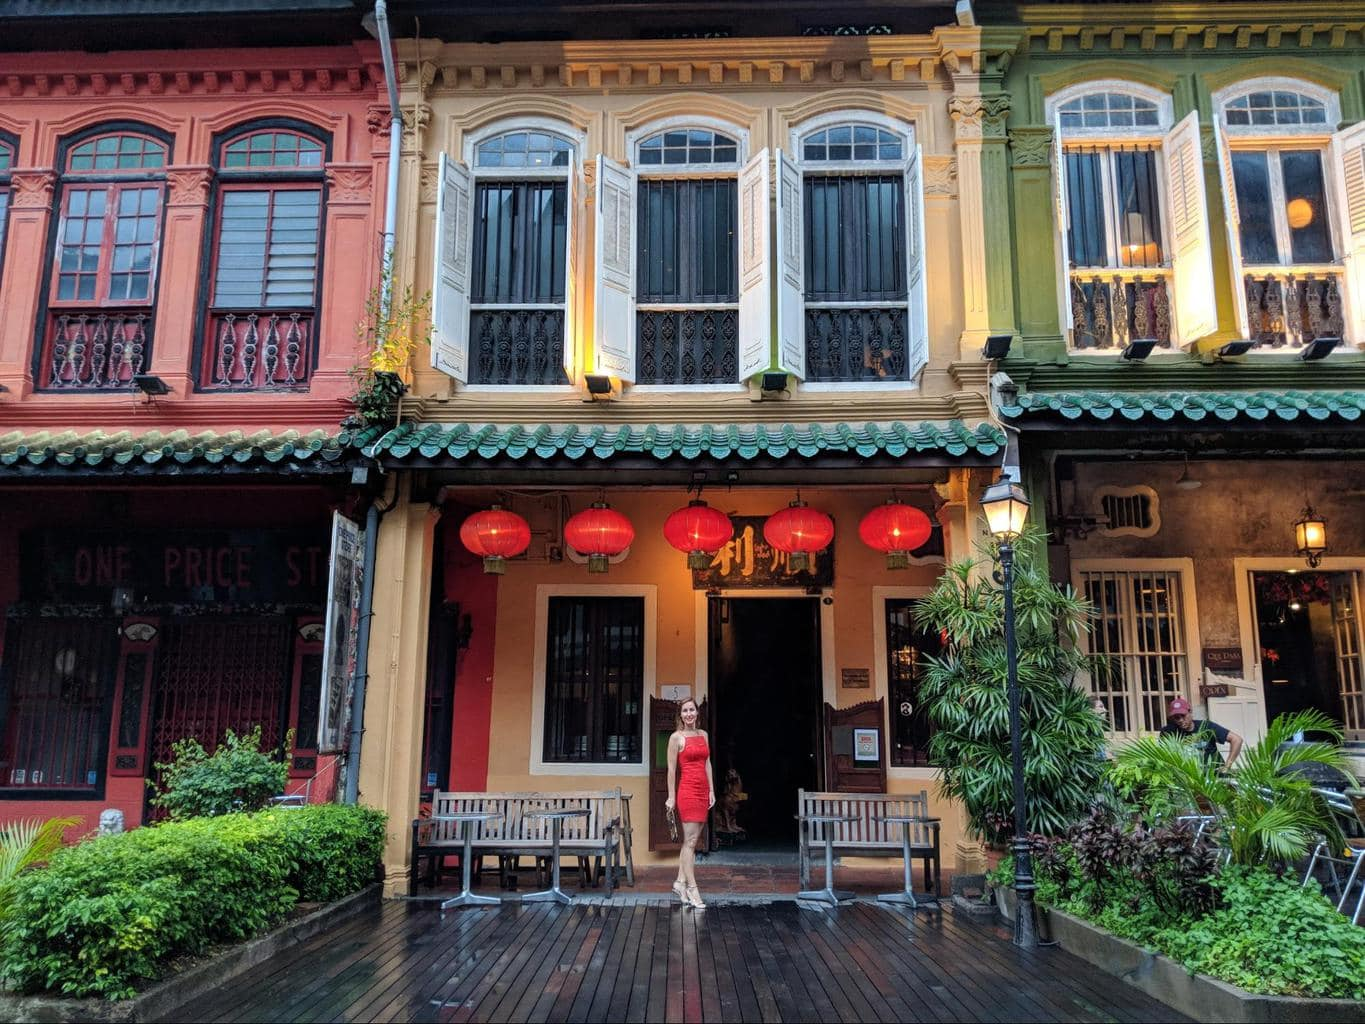 Emerald Hill in Singapore